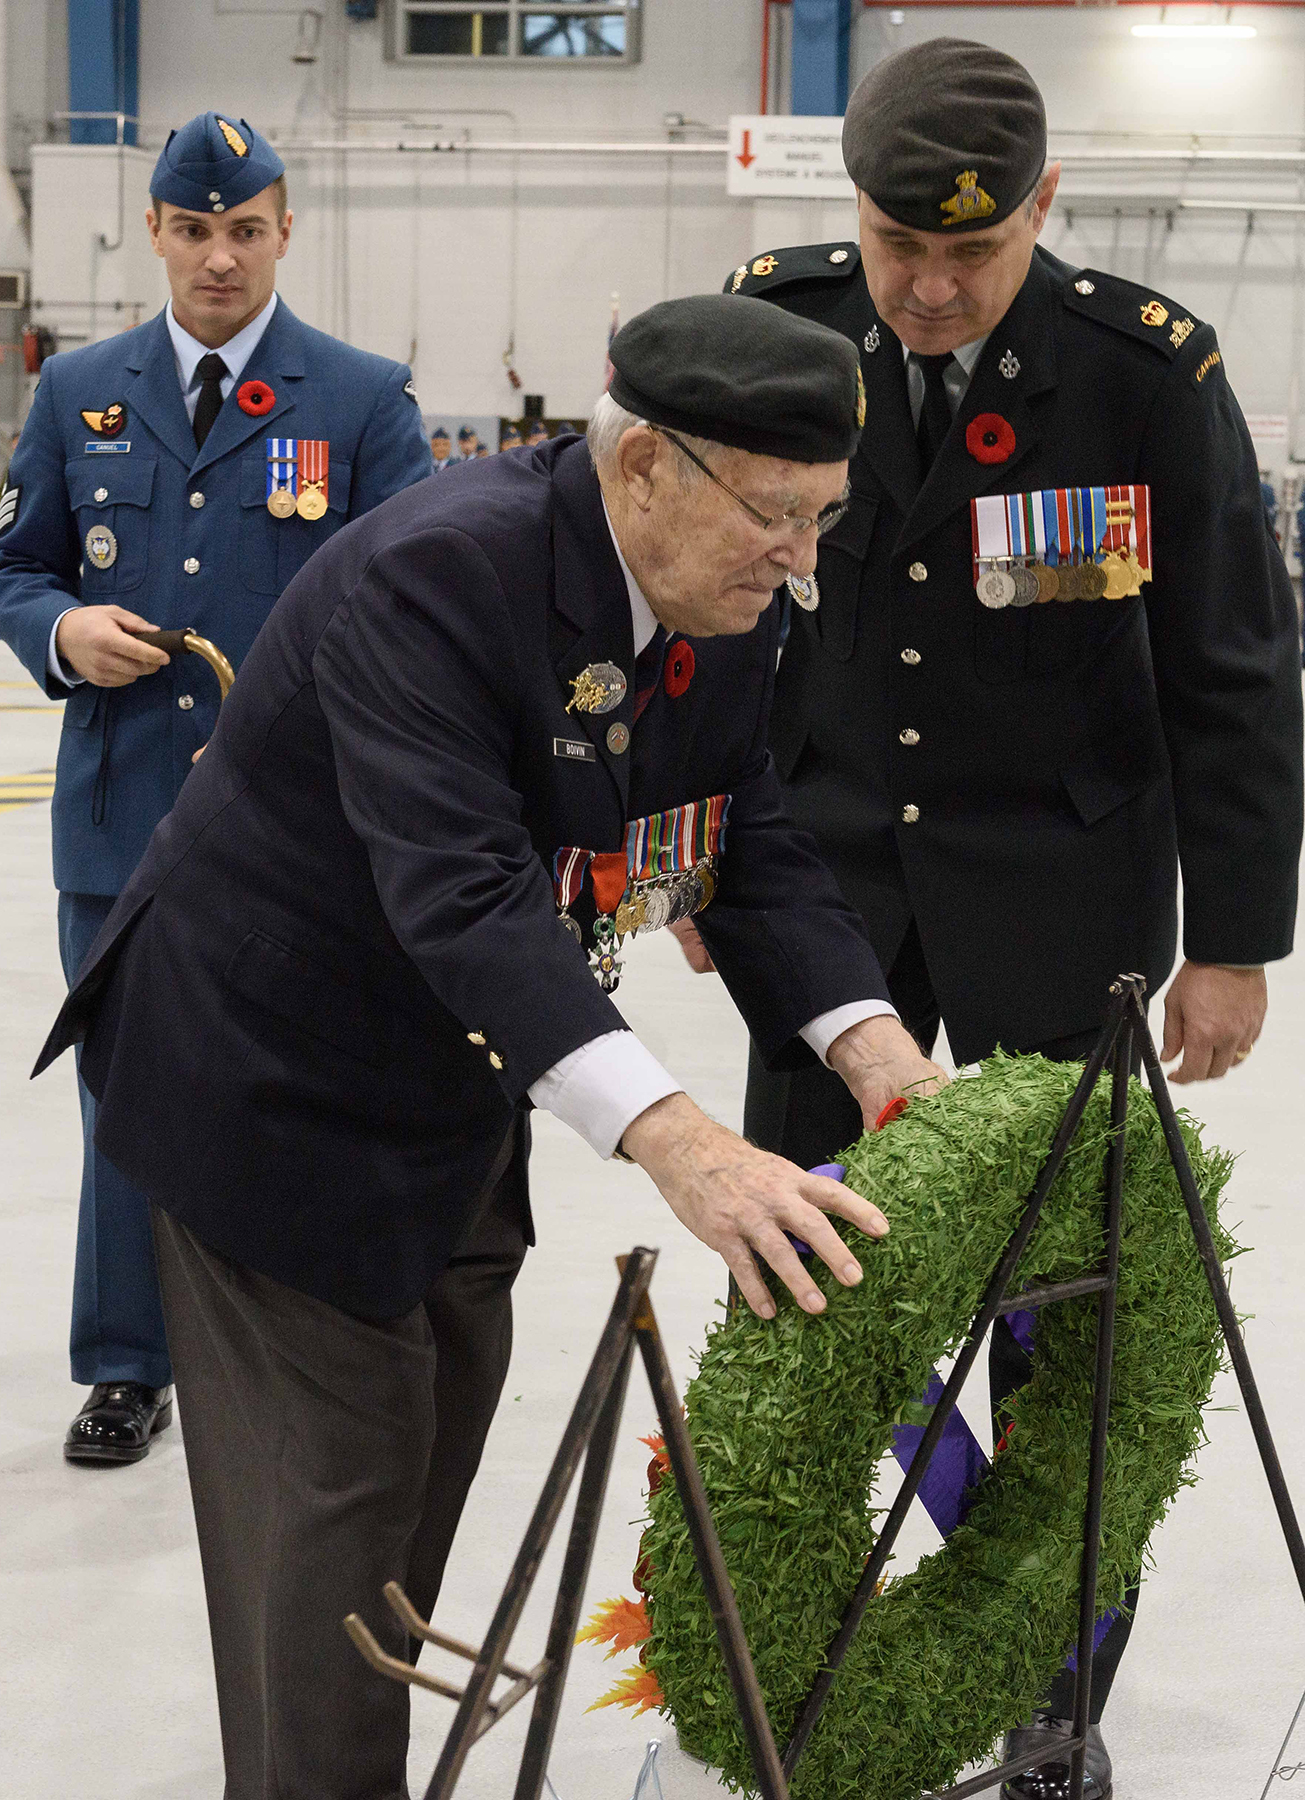 Reviewing officer Lieutenant-Colonel (retired) Adrien Boivin lays a wreath during the Remembrance Day ceremony held at Canadian Forces Base Bagotville, in Québec, on November 11, 2016. PHOTO: Master Corporal Louis Brunet